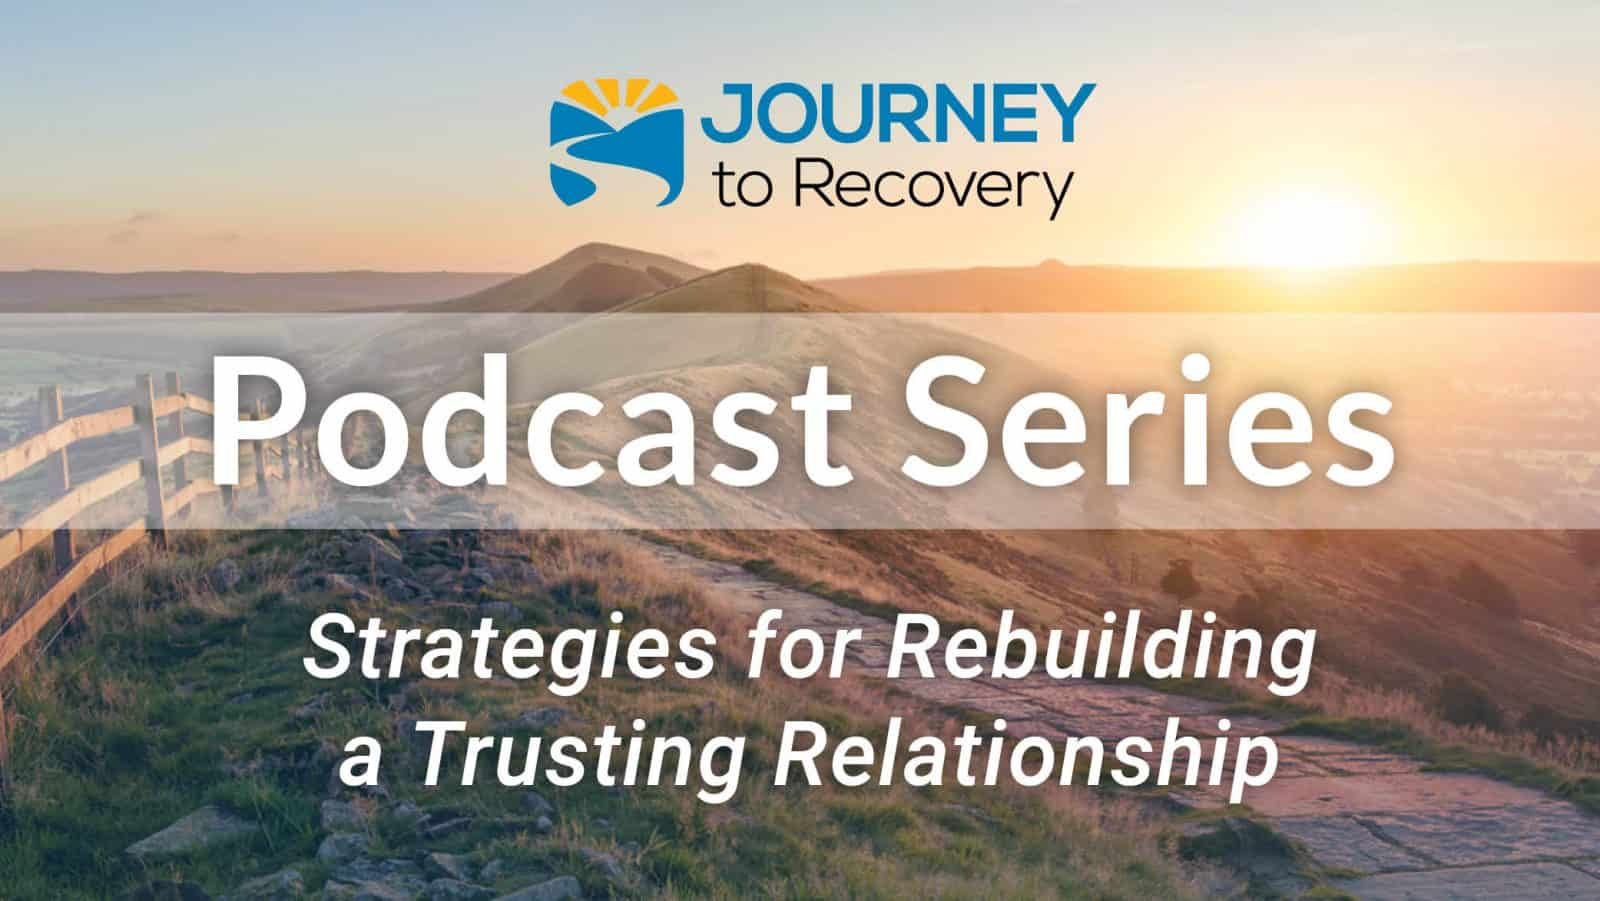 Strategies for Rebuilding a Trusting Relationship